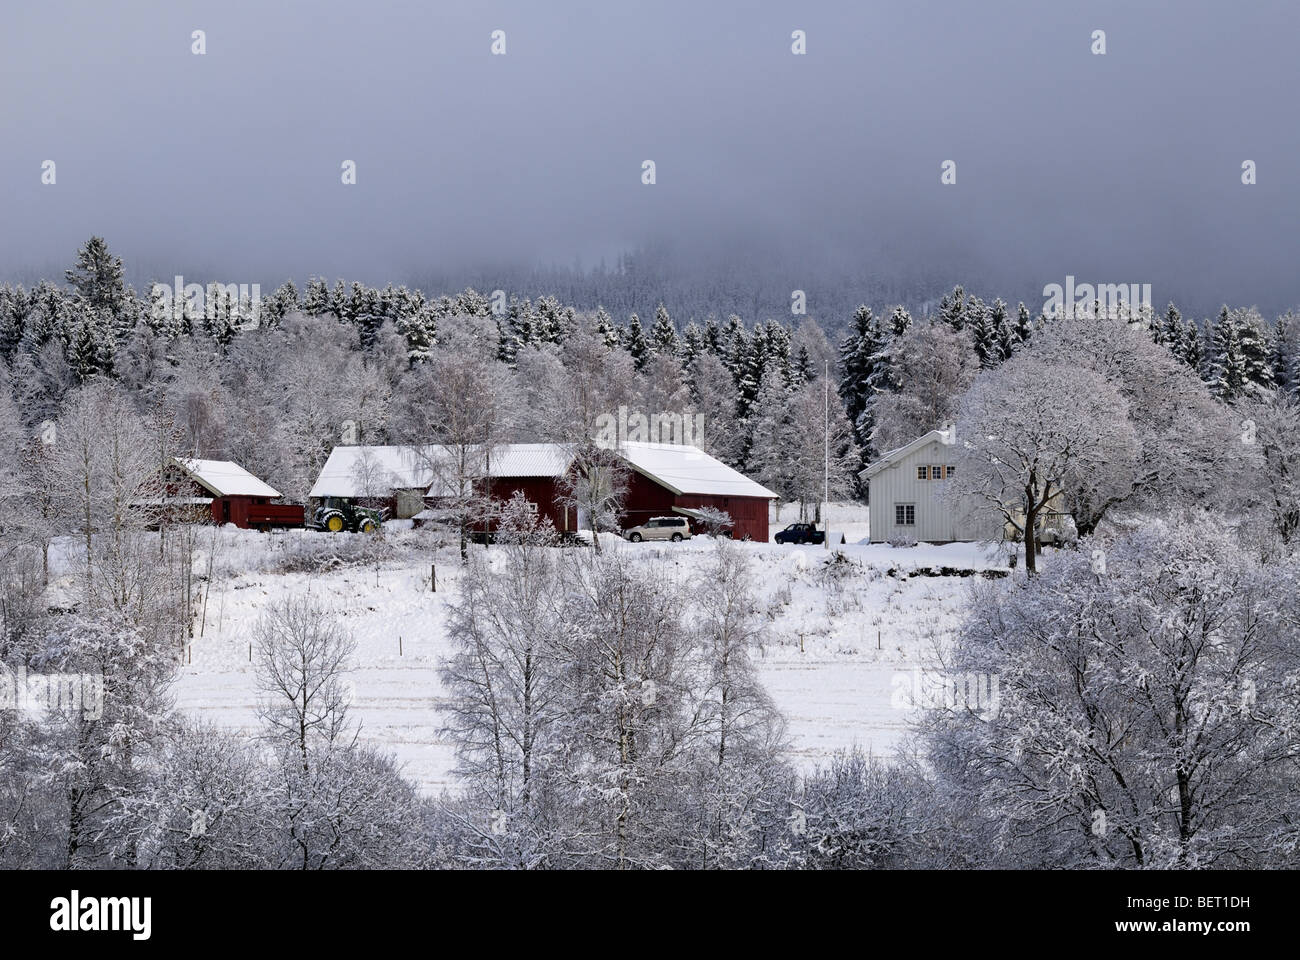 Farmhouses an snow covered field - Stock Image